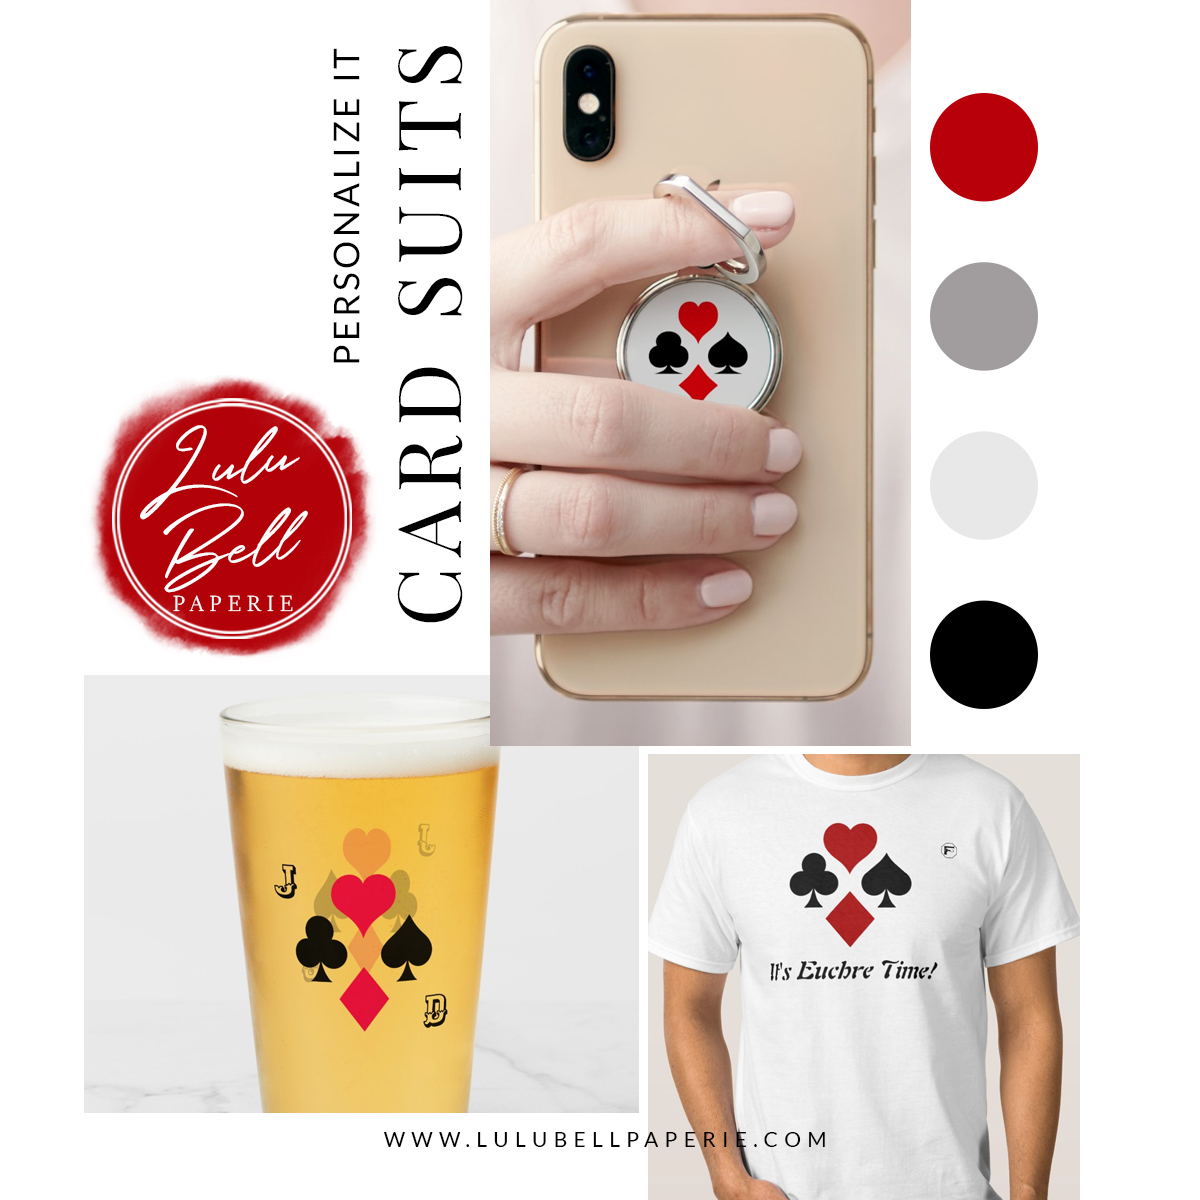 Personalized and monogrammed beer glass, tee-shirt, and phone grip. Custom gifts and apparel with playing card suit symbols; hear, spade, club, and diamond. In a red black and gray color palette.